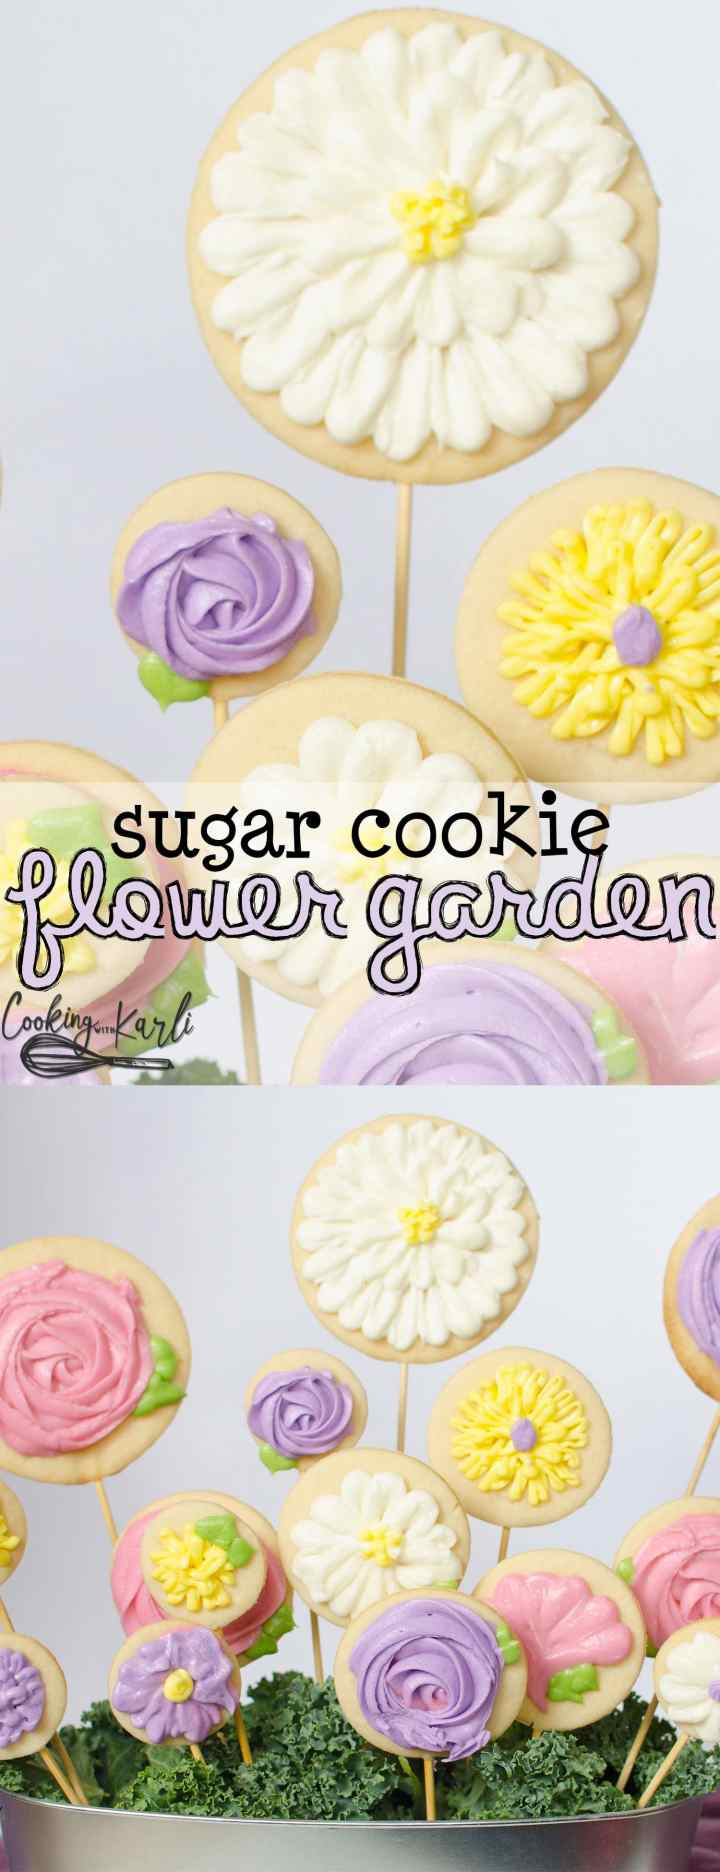 Sugar Cookie Flowers make the perfect Mother's Day gift! Cut-out sugar cookies baked onto a skewer and decorated with buttercream frosting then arranged in a pot to look like a garden of flowers! |Cooking with Karli| #mothersday #gift #dessert #flowers #recipe #tutorial #howto #diy #sugarcookies #buttercream